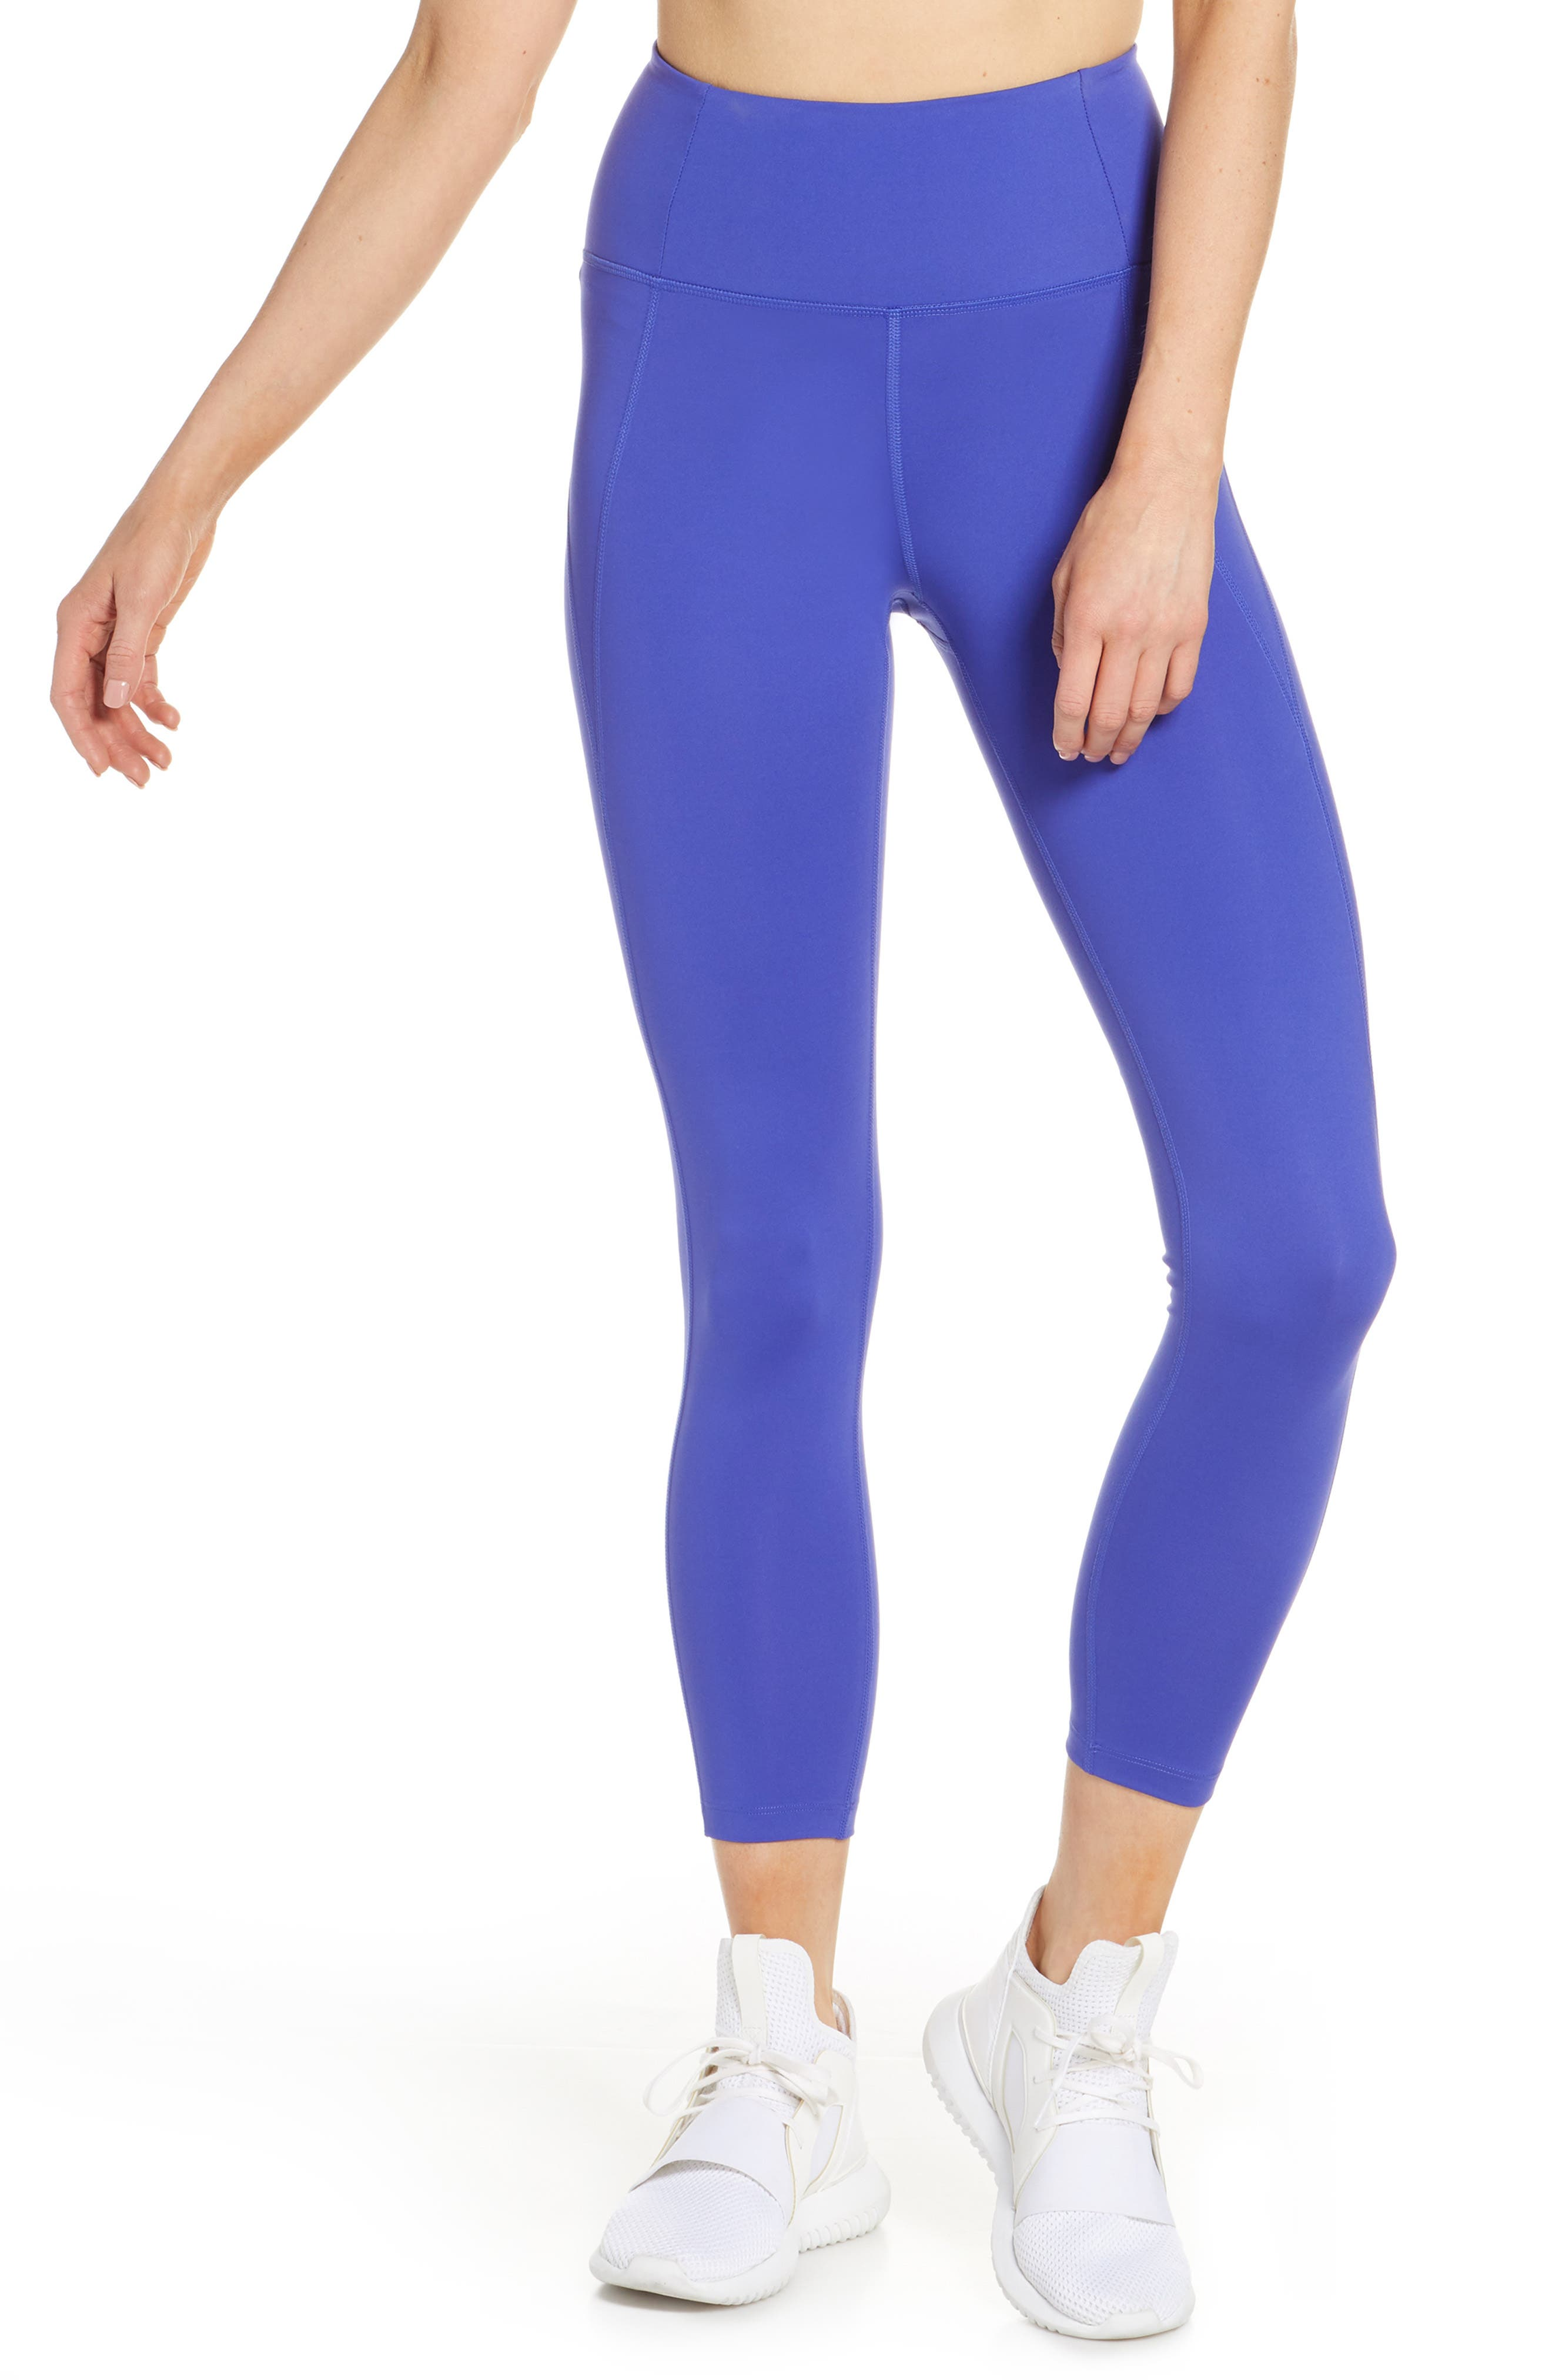 Girlfriend Collective High Waist 7/8 Leggings, Blue